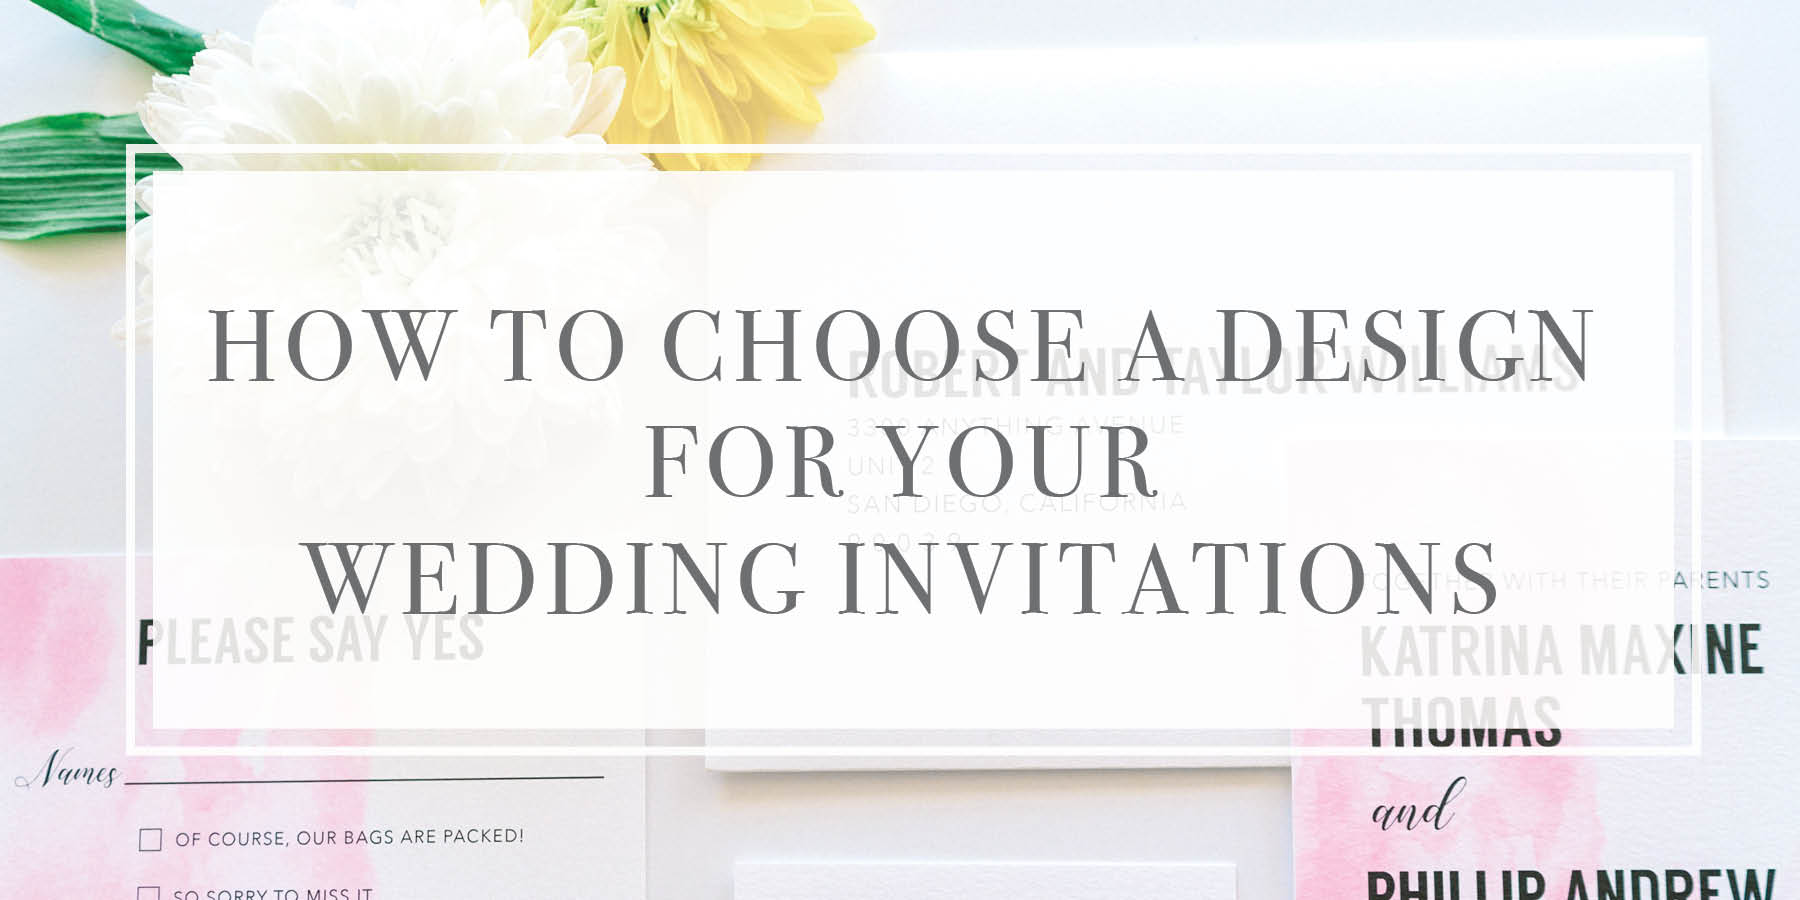 How to Choose a Design for Your Wedding Invitations